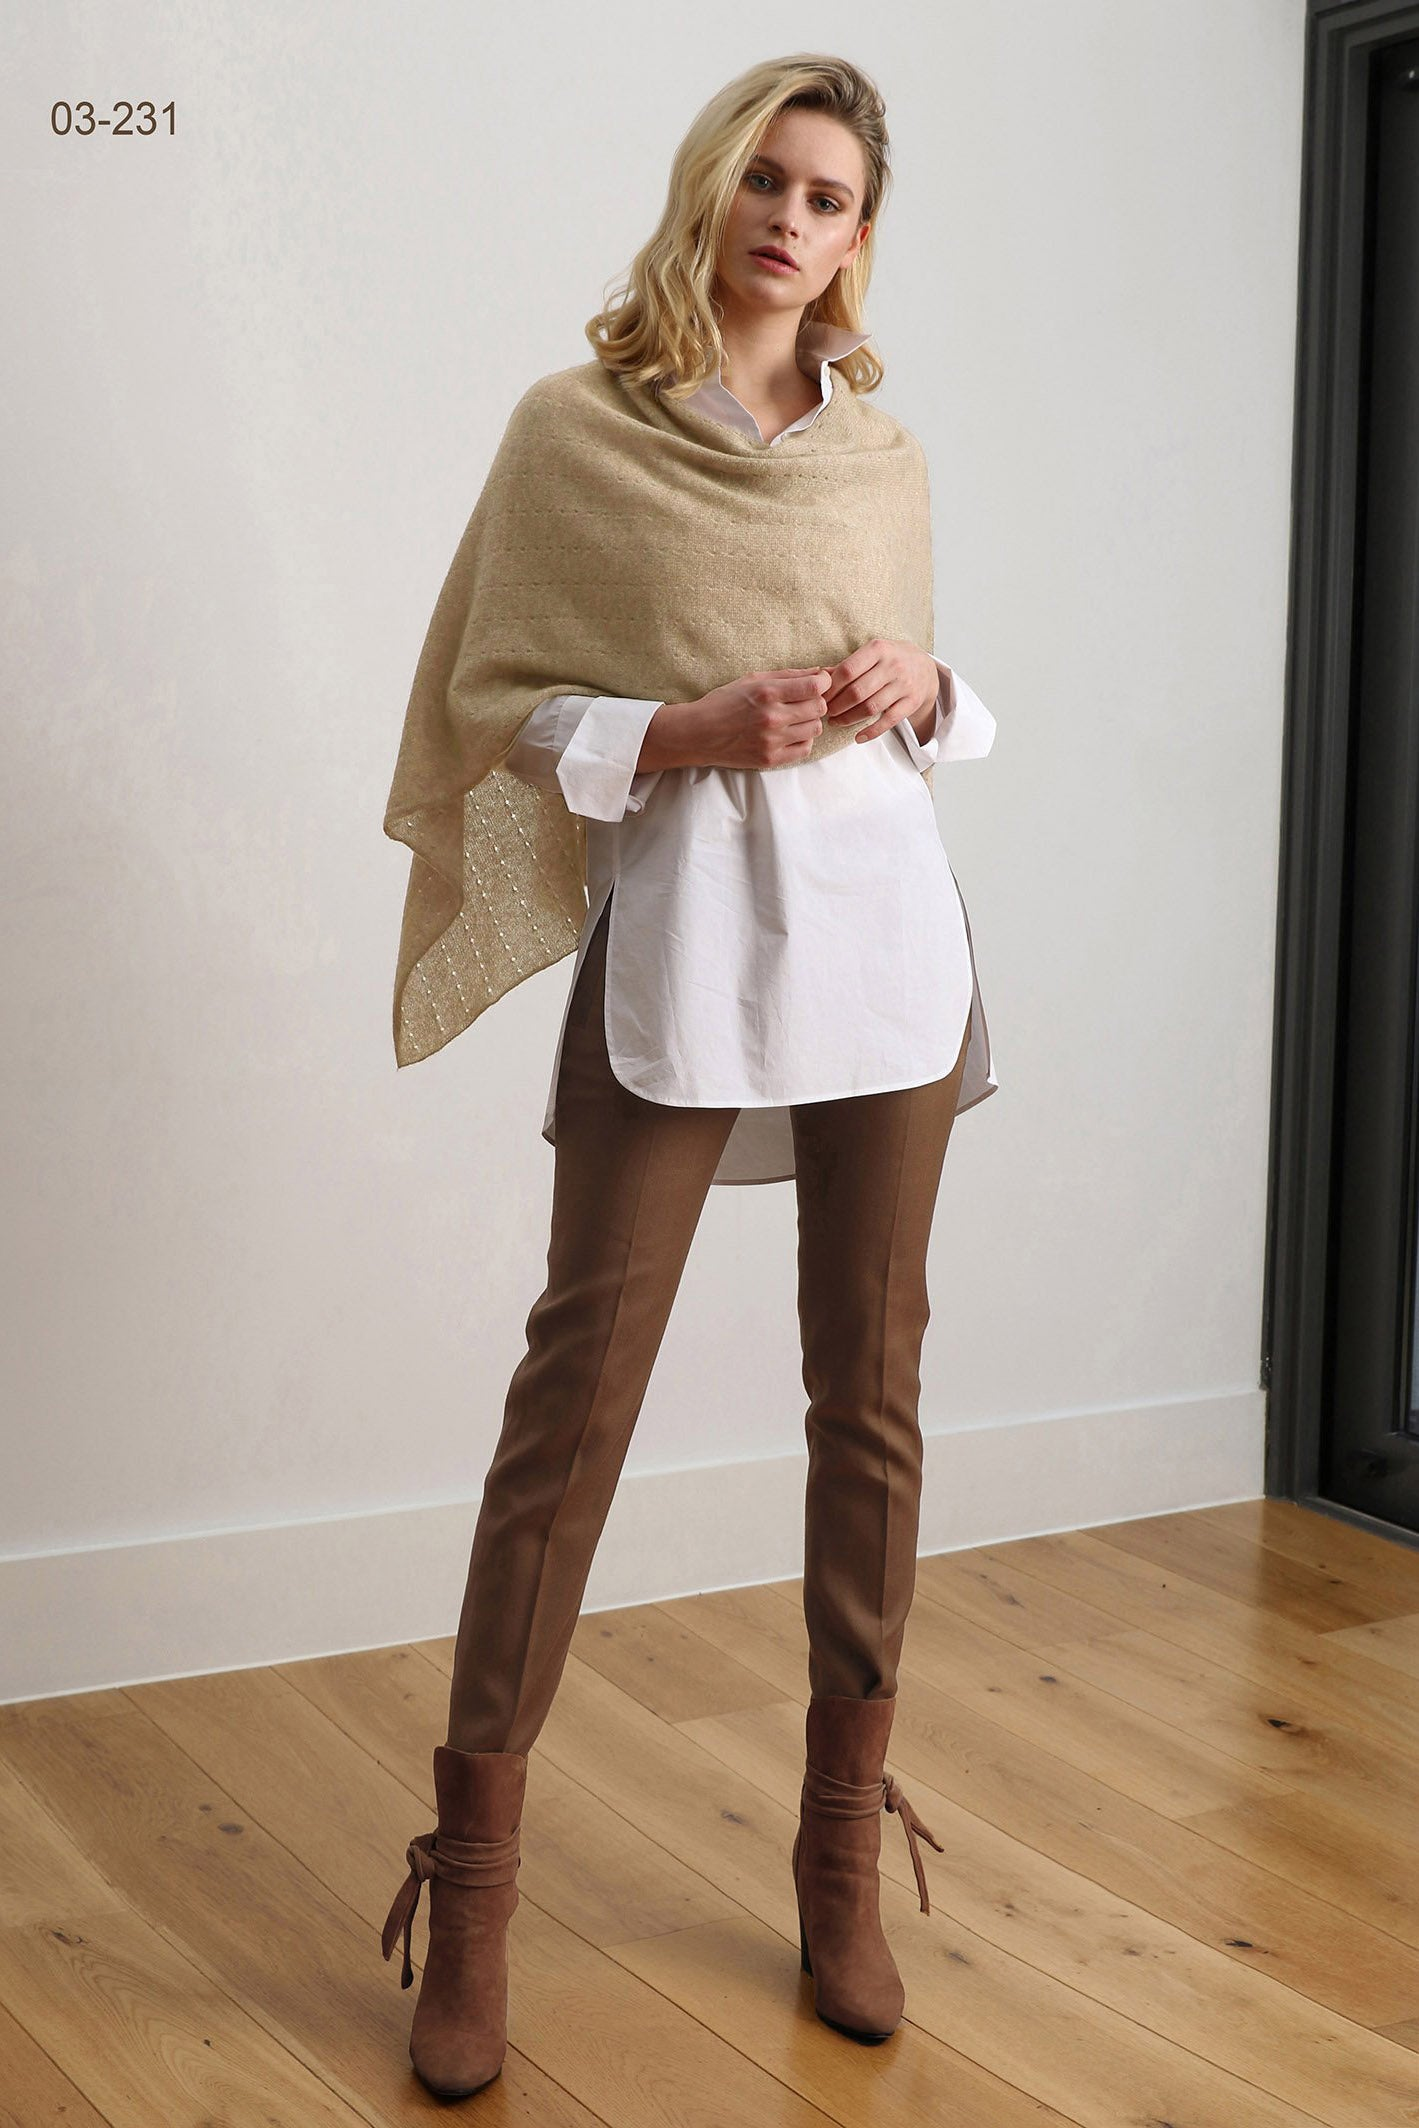 Beige Cashmere Poncho UK, beige Women Wrap, Cape, Shawls, Scarf, shawl, cardigan, light weight, multiwear poncho, ladies small button poncho sweater sale | SEMON Cashmere